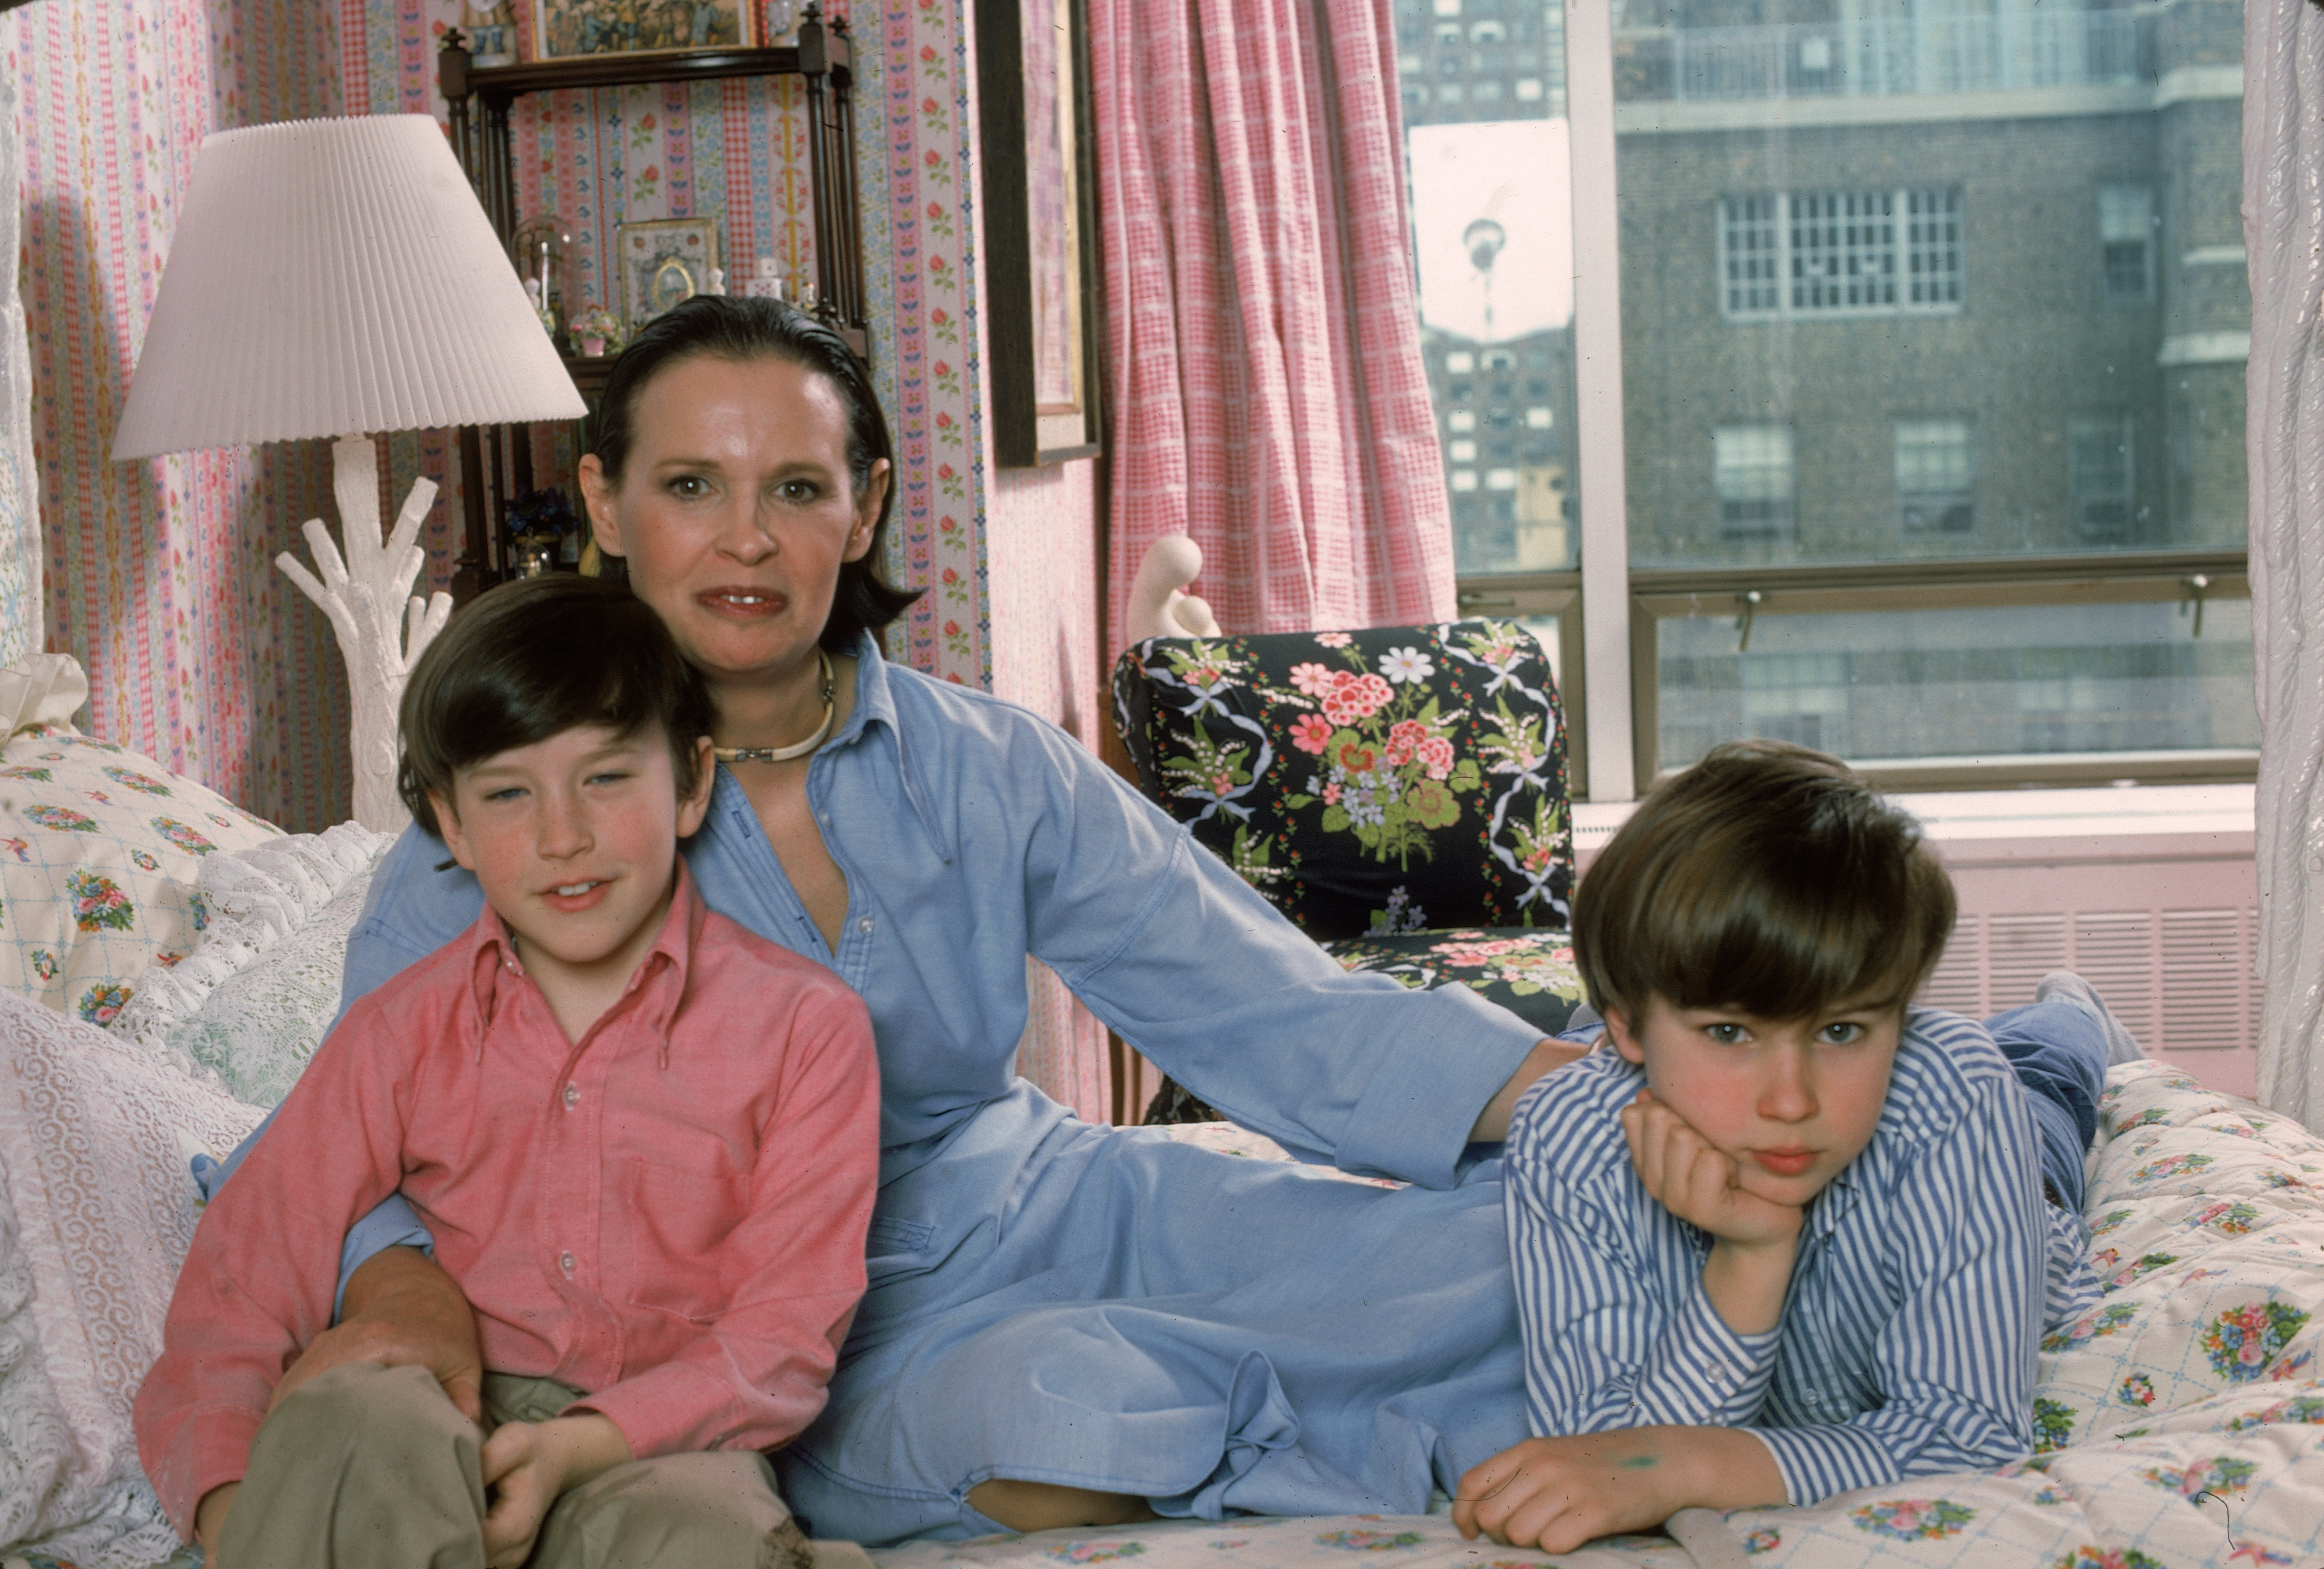 Gloria Vanderbilt poses with sons Anderson Cooper and Carter Vanderbilt Cooper on her bed in their apartment in the UN Towers in New York City in March 1976.